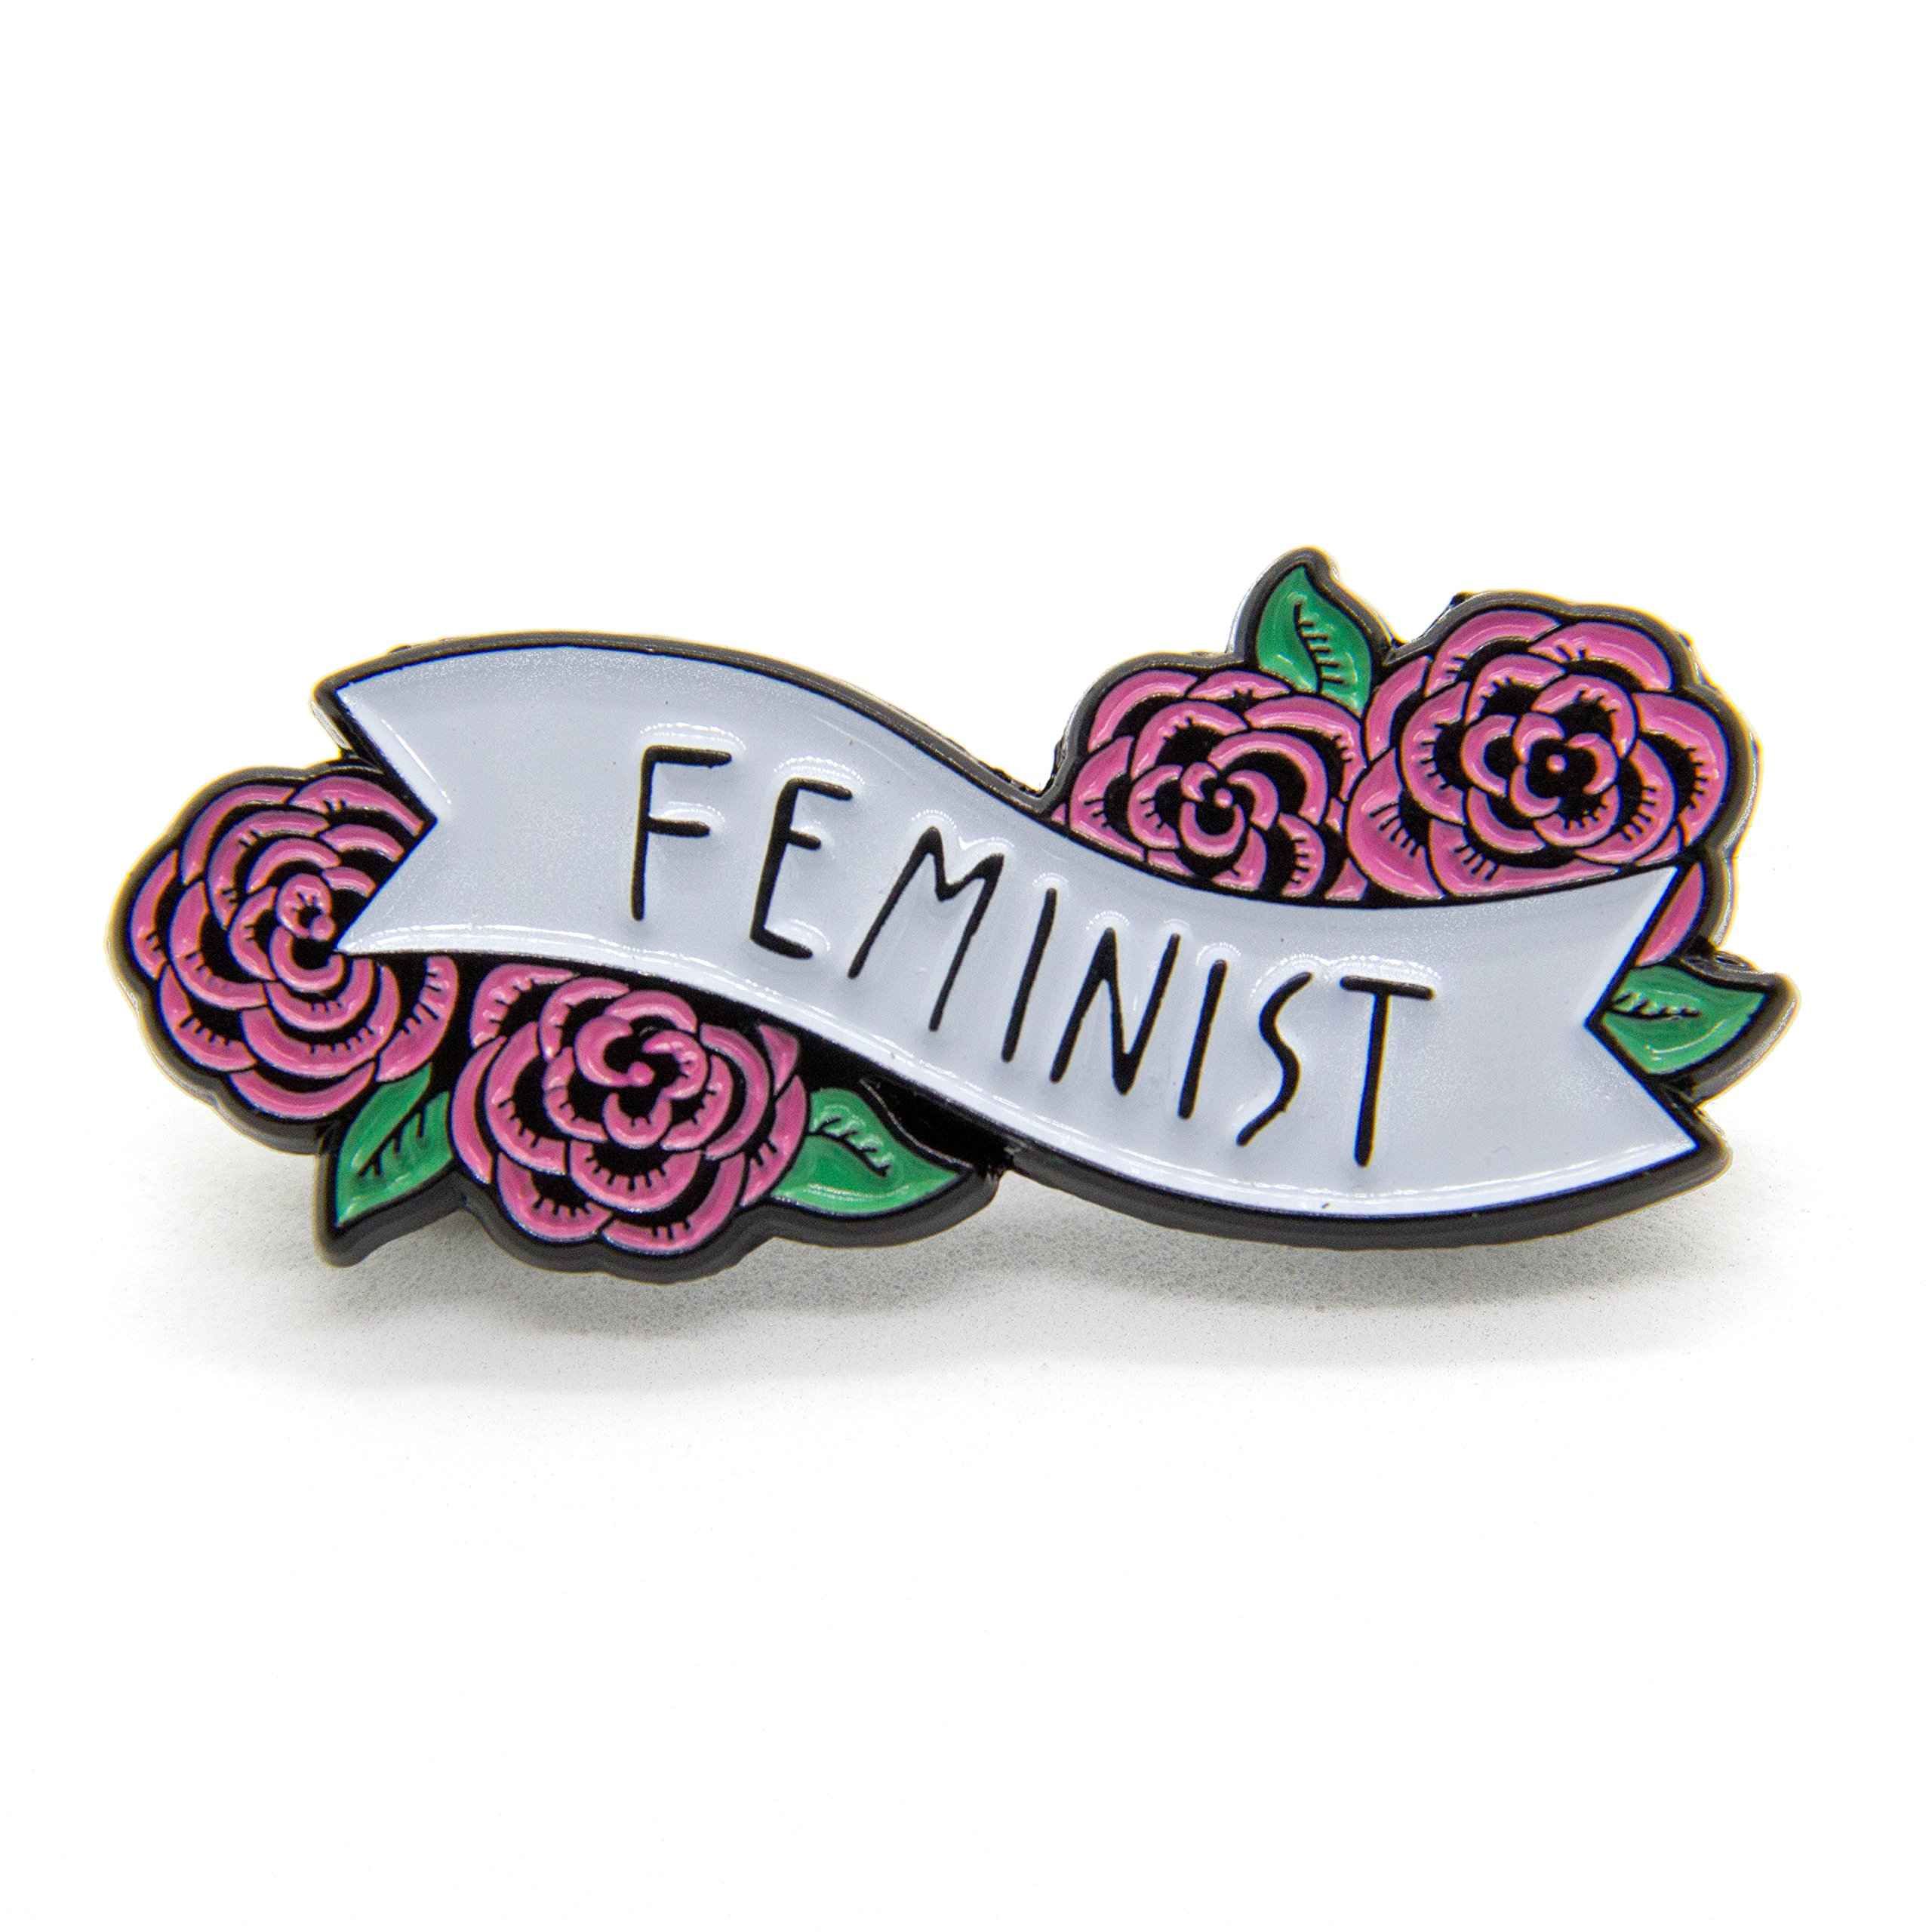 Ectogasm Feminist Enamel Pin Banner with Flowers Cute Quote Accessory for Women by Ectogasm